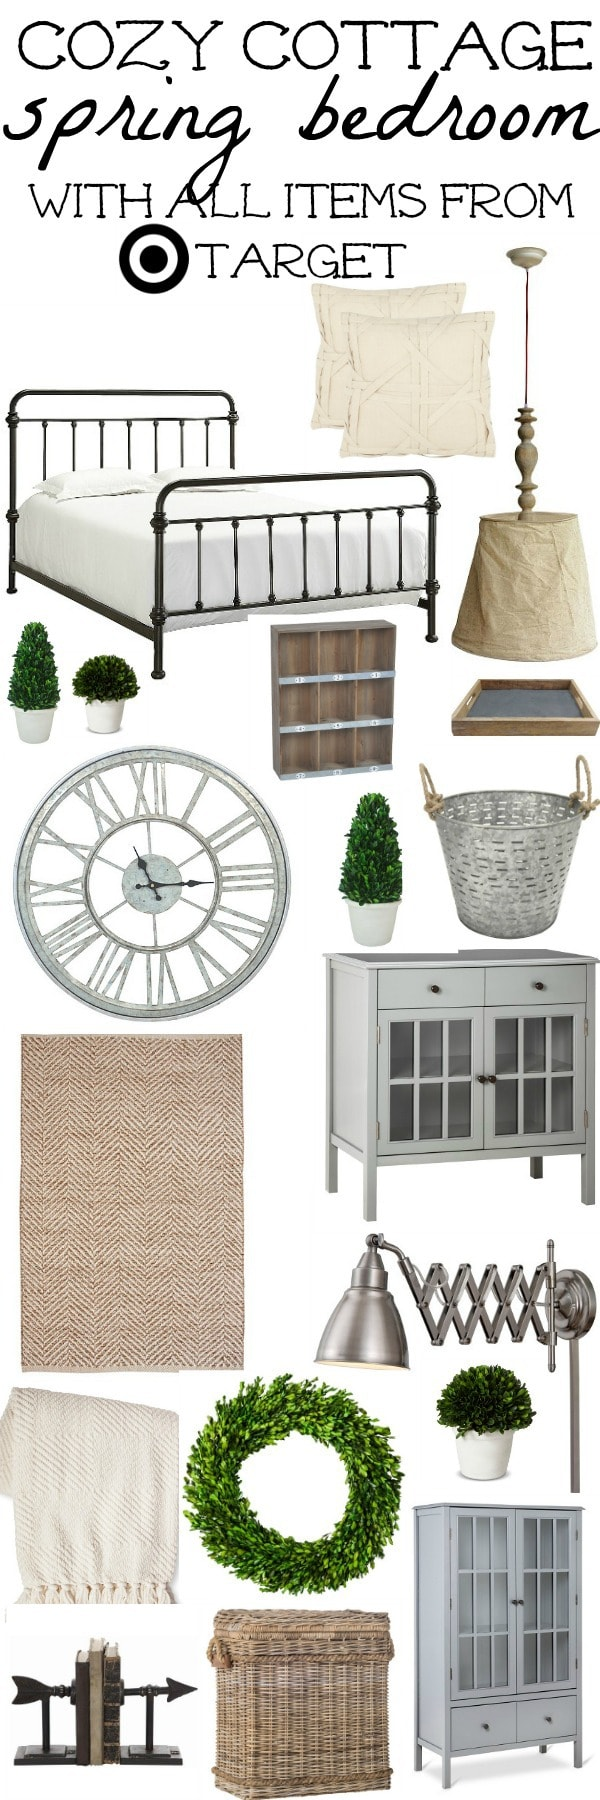 The best design inspiration boards of 2016 liz marie blog for Spring hill designs bedroom furniture